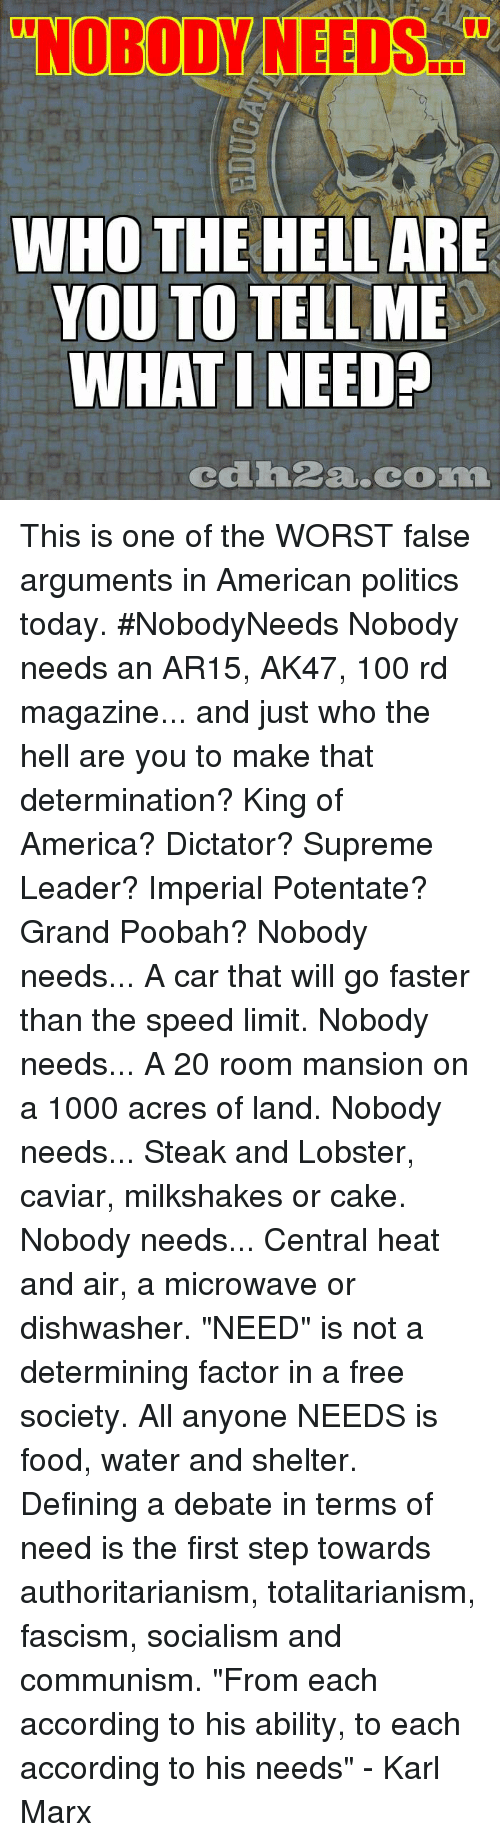 """America, Anaconda, and Food: """"NOBODY NEEDS.  WHO THE HELL ARE  YOU TO TELL ME  WHAT I NEED  cdh2a.com This is one of the WORST false arguments in American politics today. #NobodyNeeds Nobody needs an AR15, AK47, 100 rd magazine... and just who the hell are you to make that determination? King of America? Dictator? Supreme Leader? Imperial Potentate? Grand Poobah?  Nobody needs... A car that will go faster than the speed limit. Nobody needs... A 20 room mansion on a 1000 acres of land. Nobody needs... Steak and Lobster, caviar, milkshakes or cake. Nobody needs... Central heat and air, a microwave or dishwasher.  """"NEED"""" is not a determining factor in a free society. All anyone NEEDS is food, water and shelter. Defining a debate in terms of need is the first step towards authoritarianism, totalitarianism, fascism, socialism and communism.  """"From each according to his ability, to each according to his needs"""" - Karl Marx"""